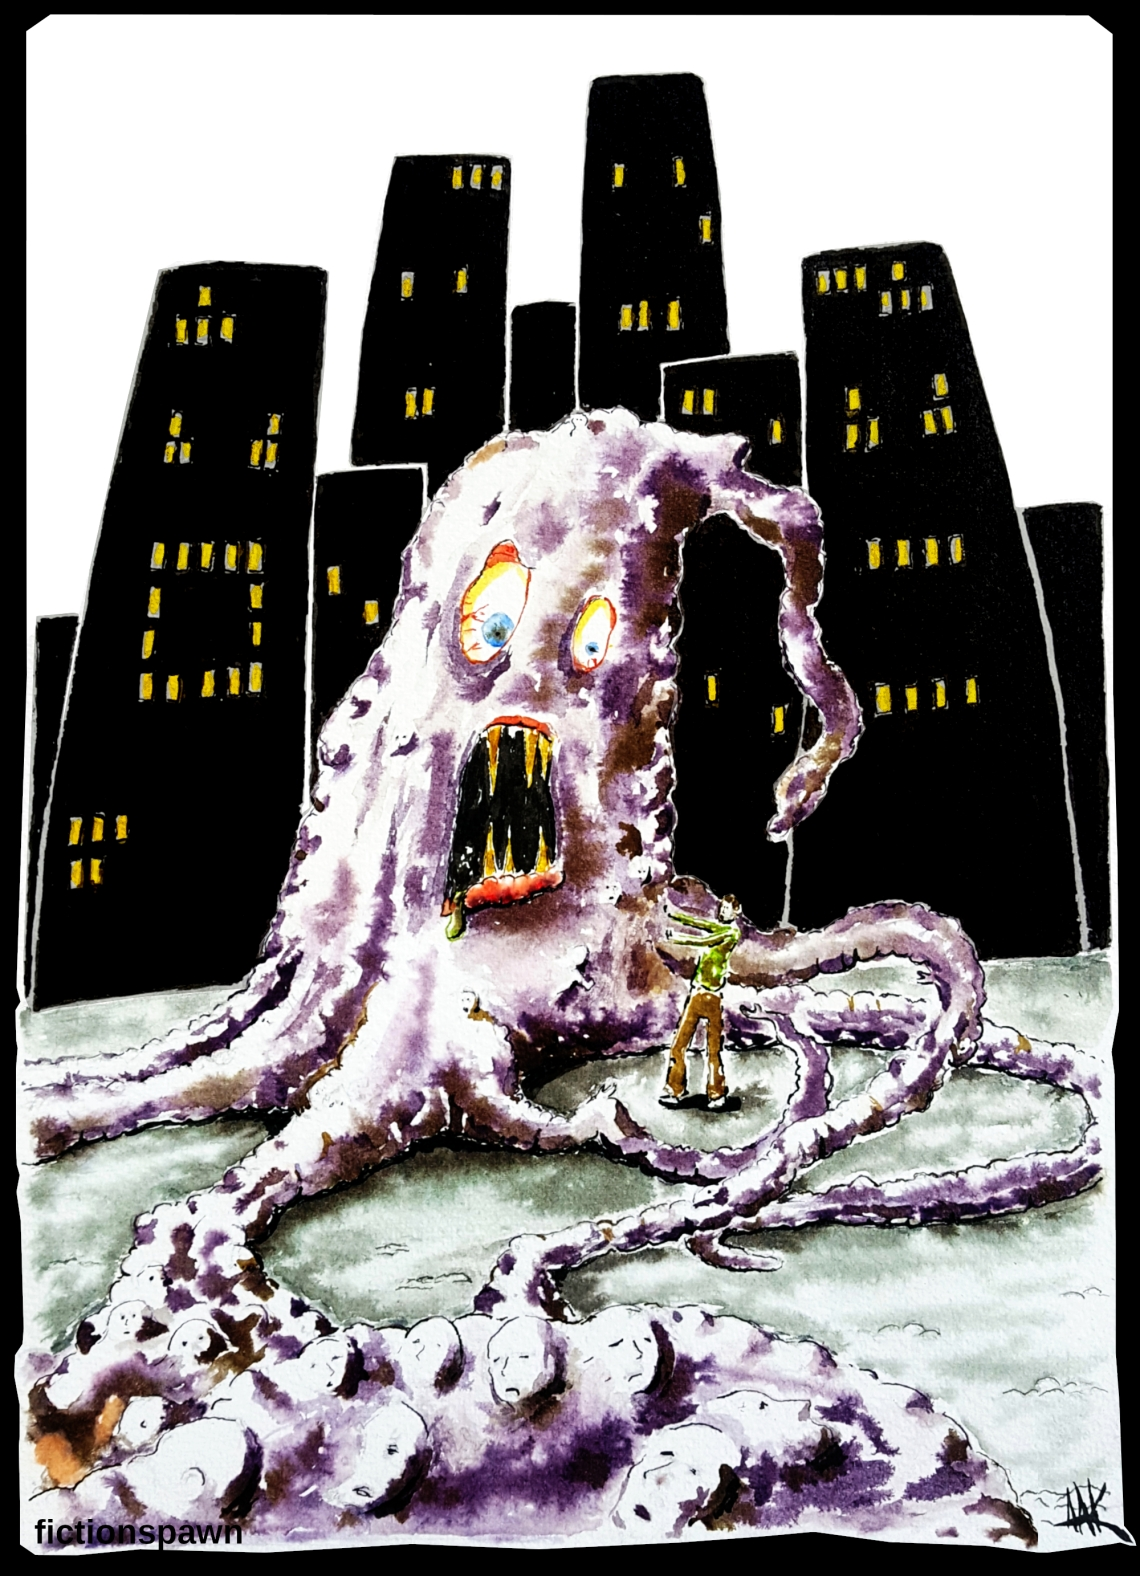 Dark city monster Aak fictionspawn